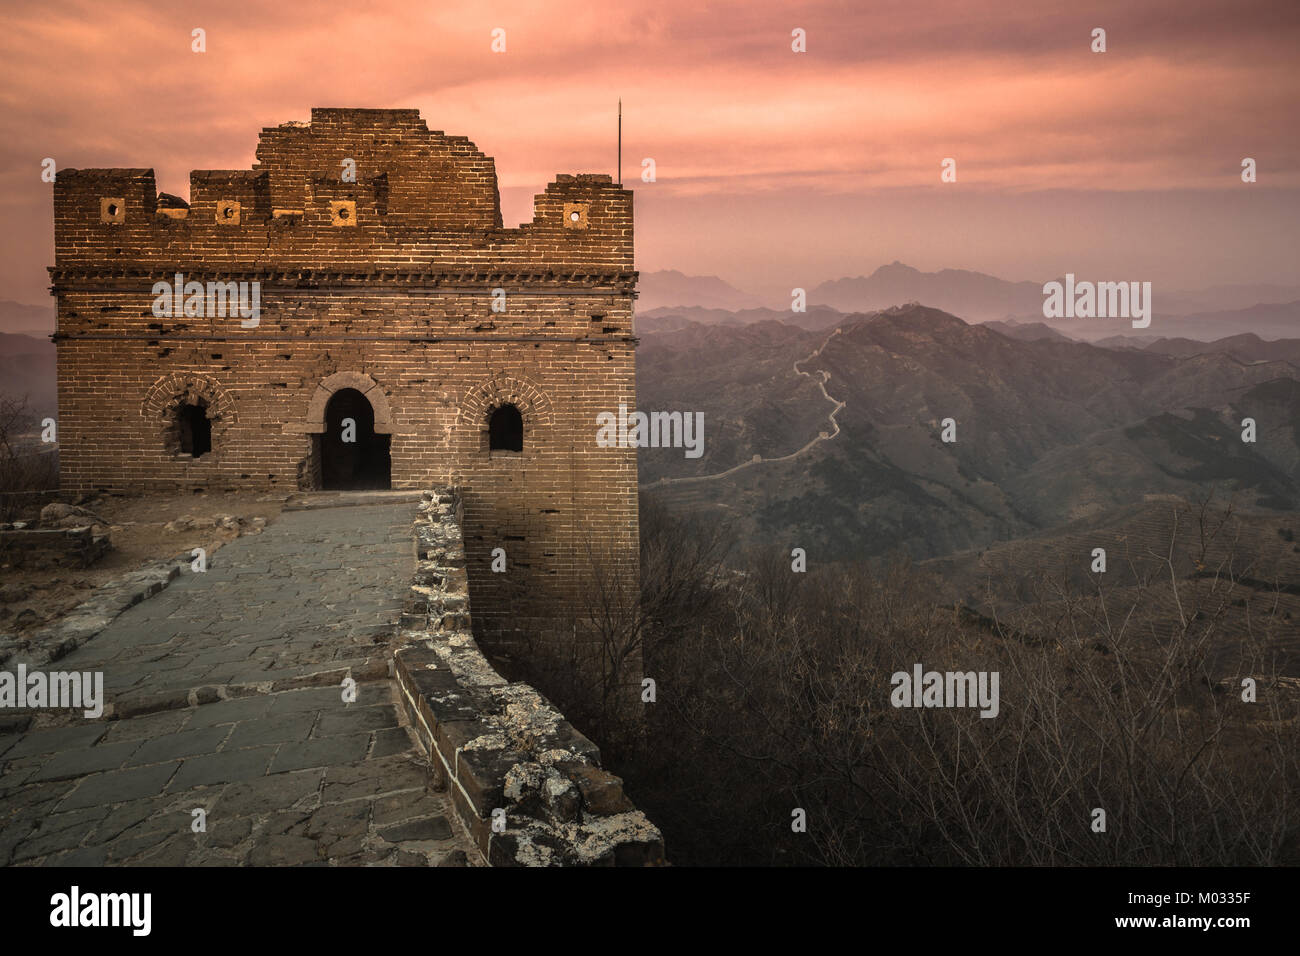 Simatai Great Wall tower over the sunrise - Stock Image